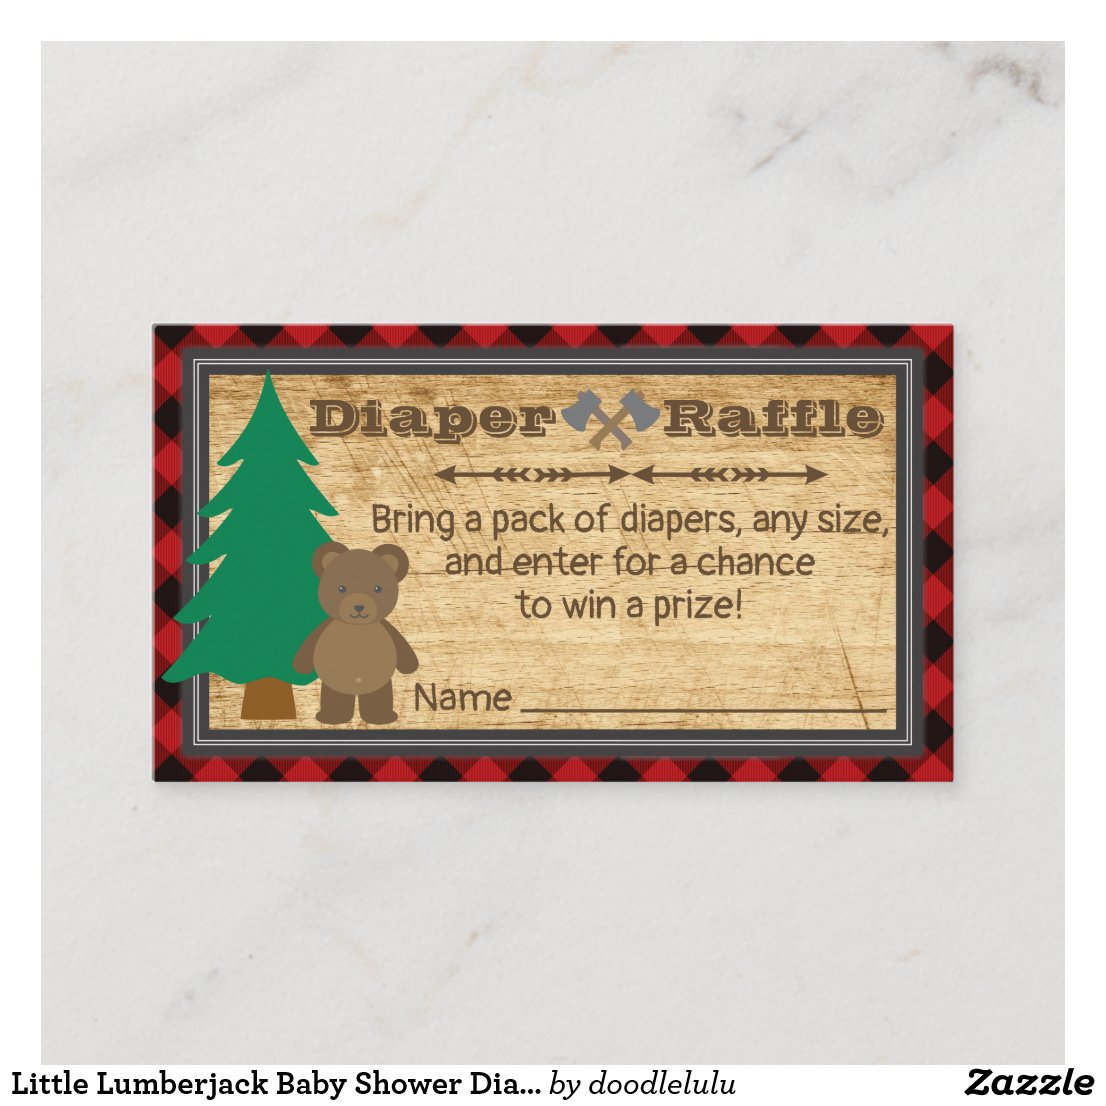 Little Lumberjack Baby Shower Diaper Raffle Ticket